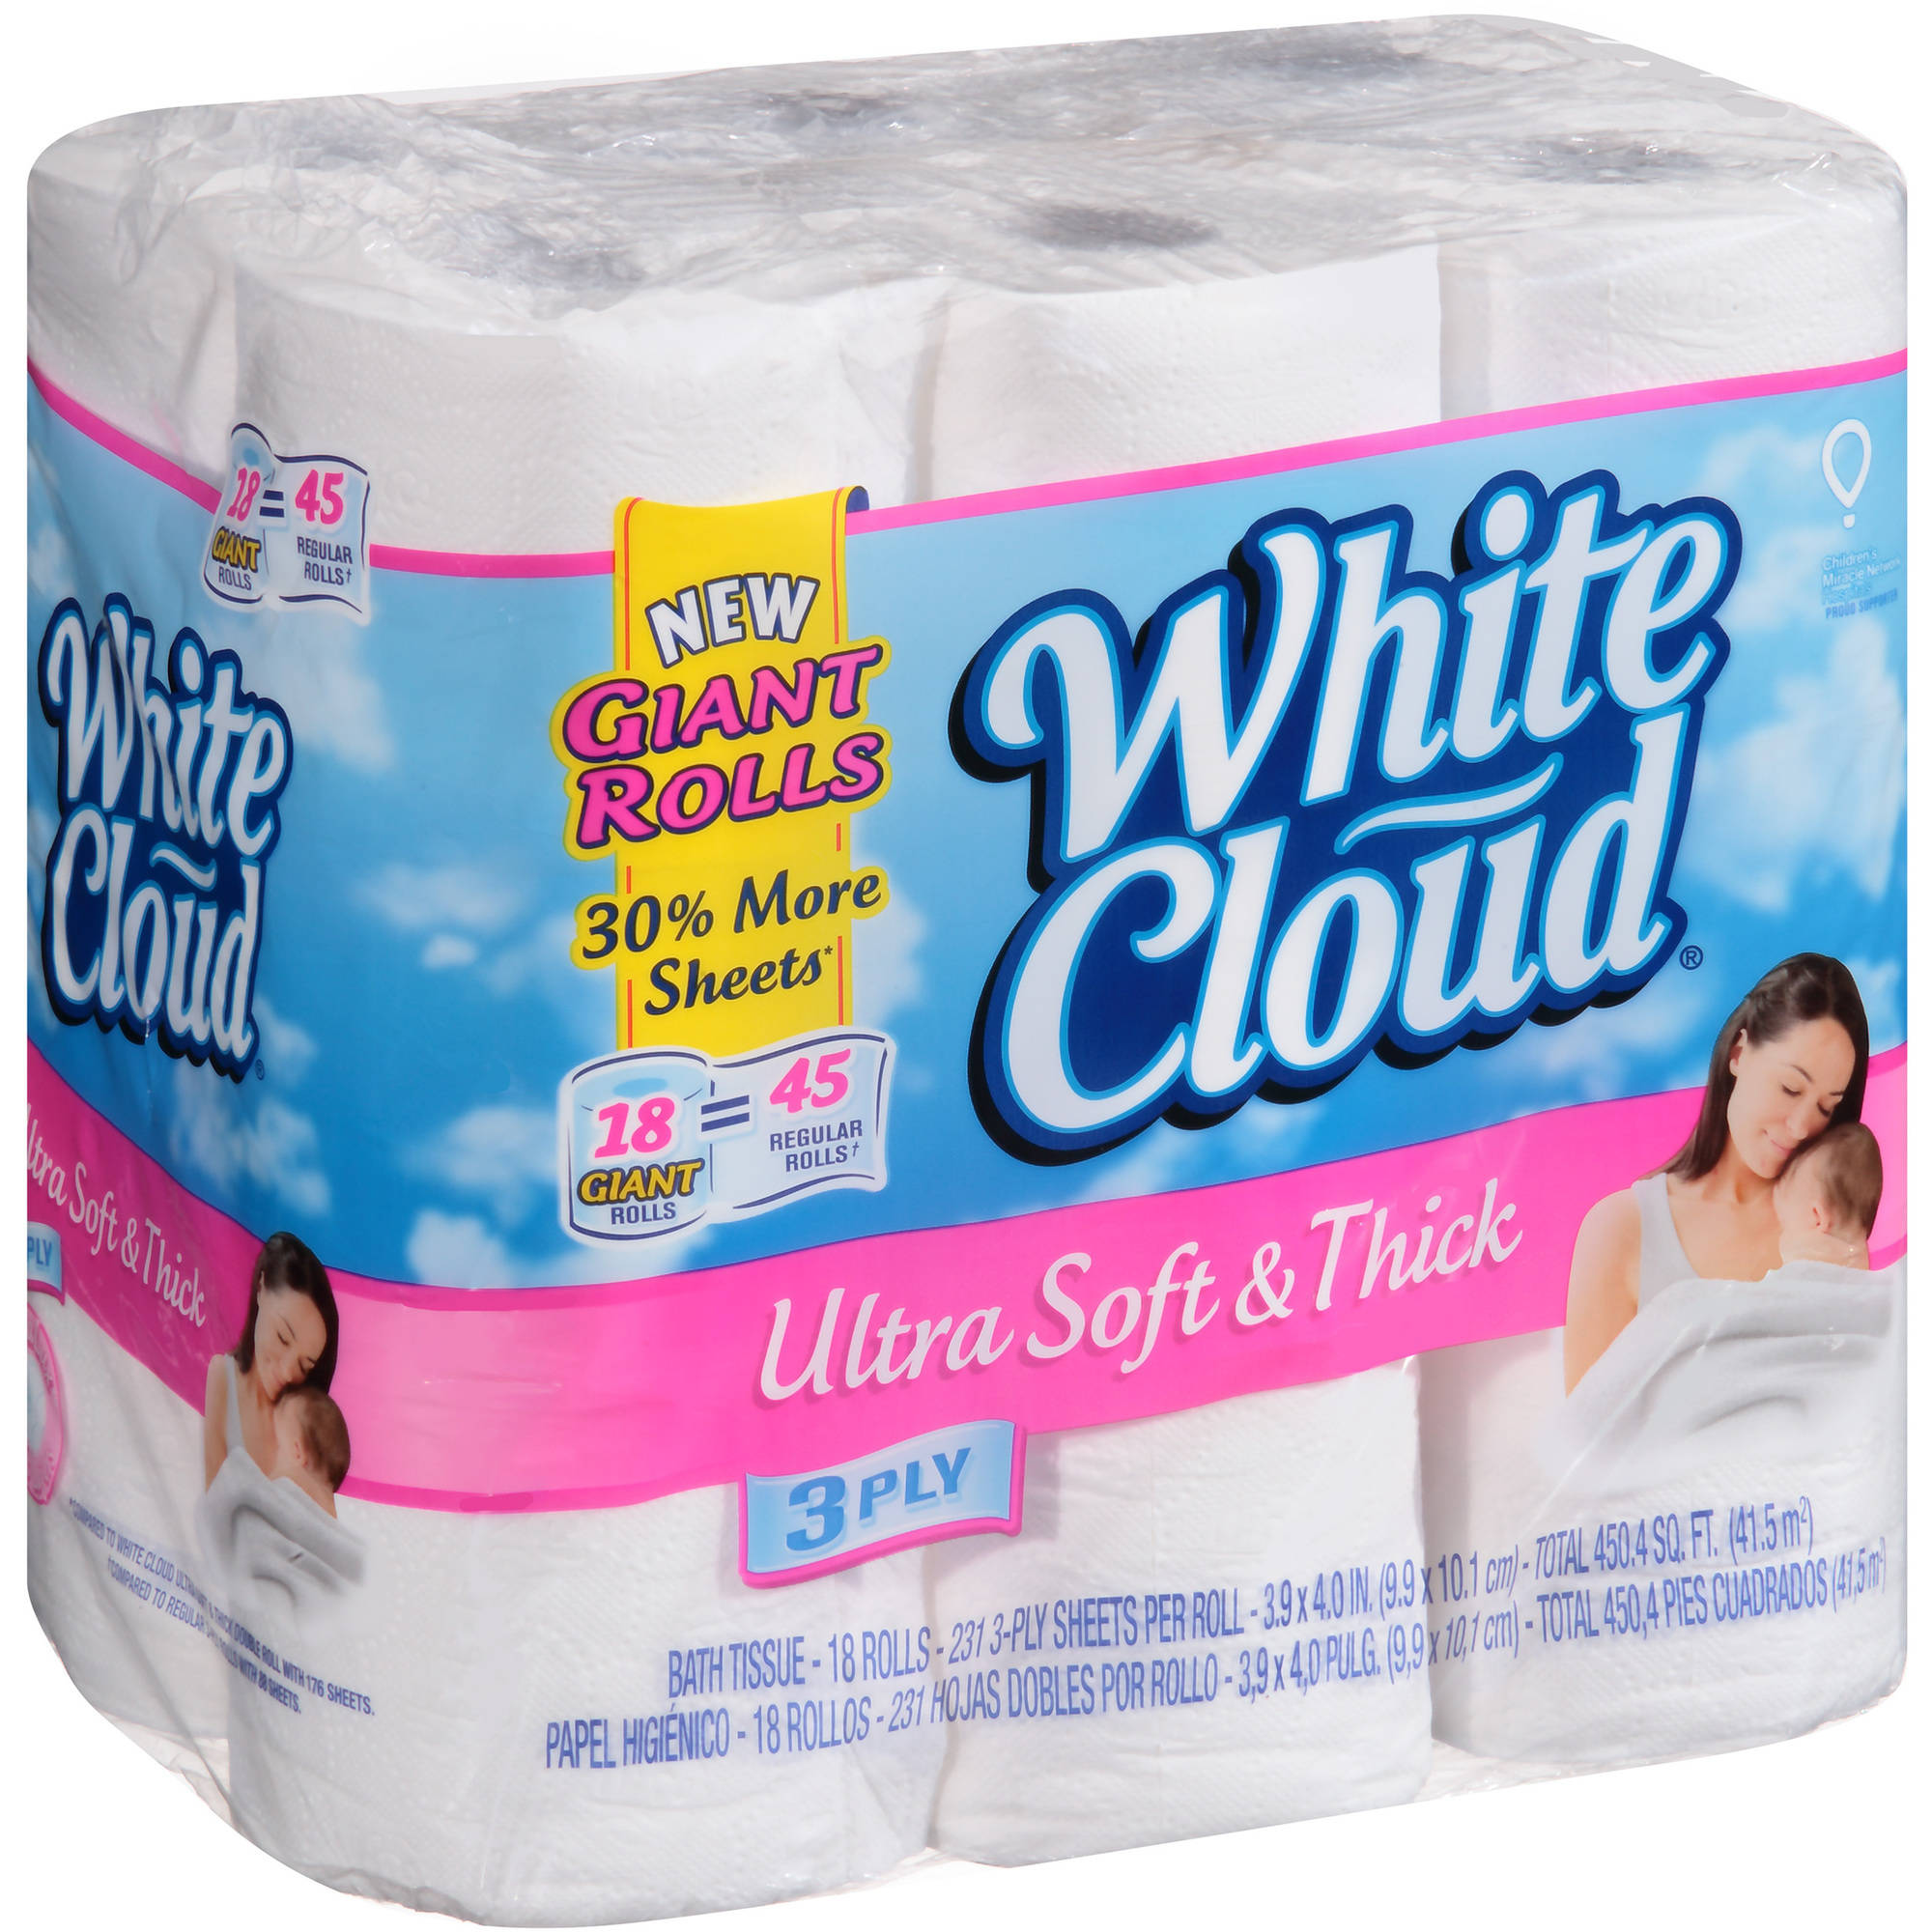 White Cloud Ultra Soft & Thick Bath Tissue Giant Rolls, 3 ply toilet ...